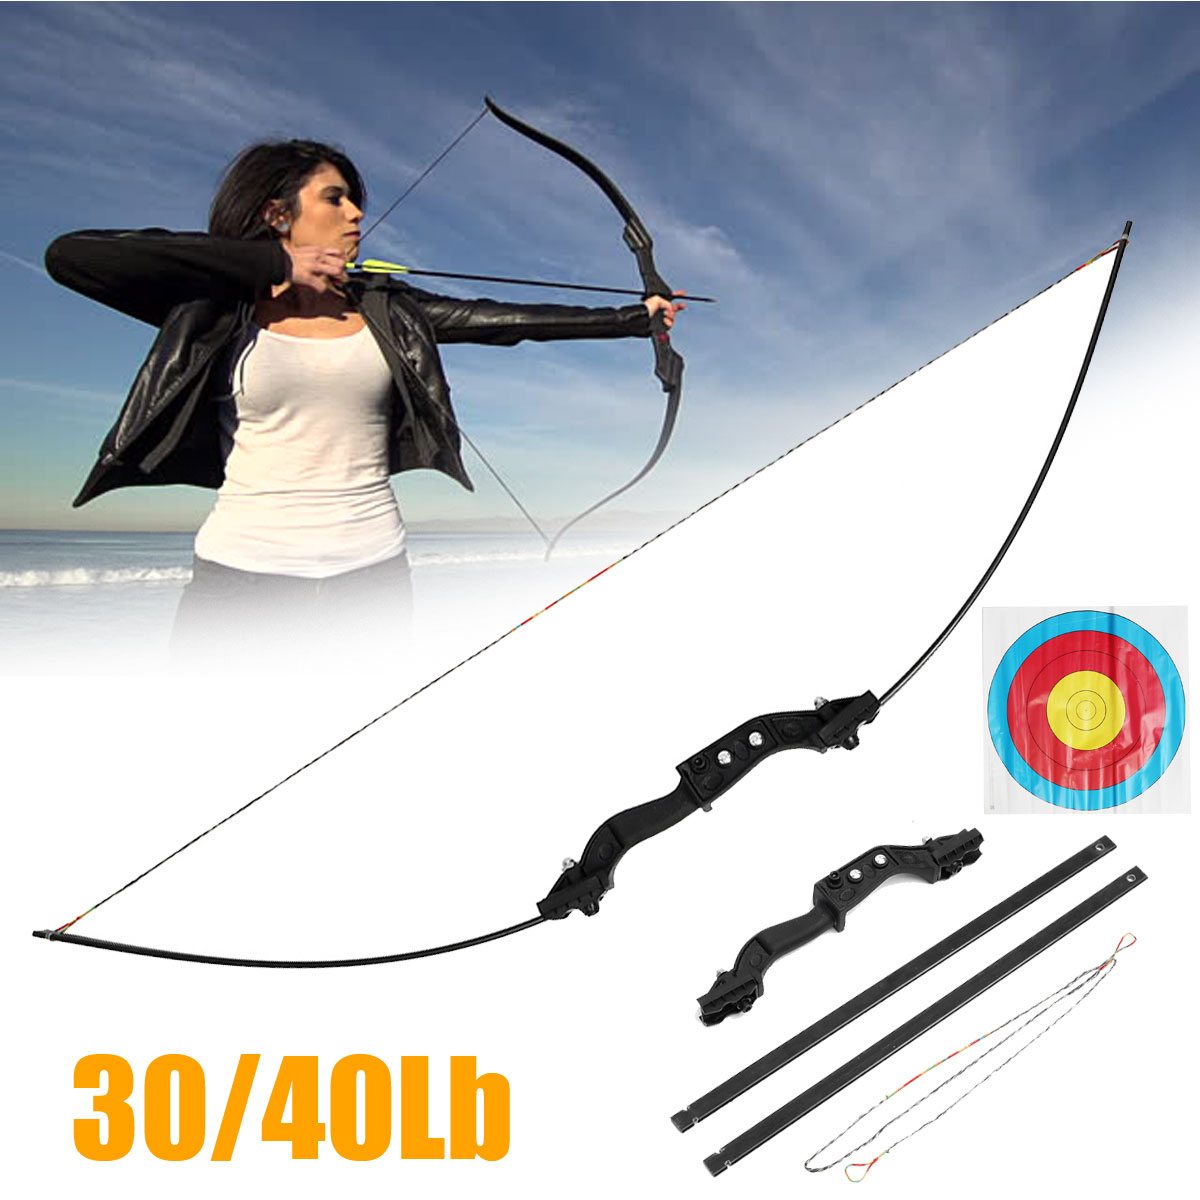 30/40l LbS Archery Hunting Bow Recurve Carbon Steel Metal Novice Bow Outdoor Hunting Shooting Entertainment 54 inch recurve bow american hunting bow 30 50 lbs for archery outdoor sport hunting practice